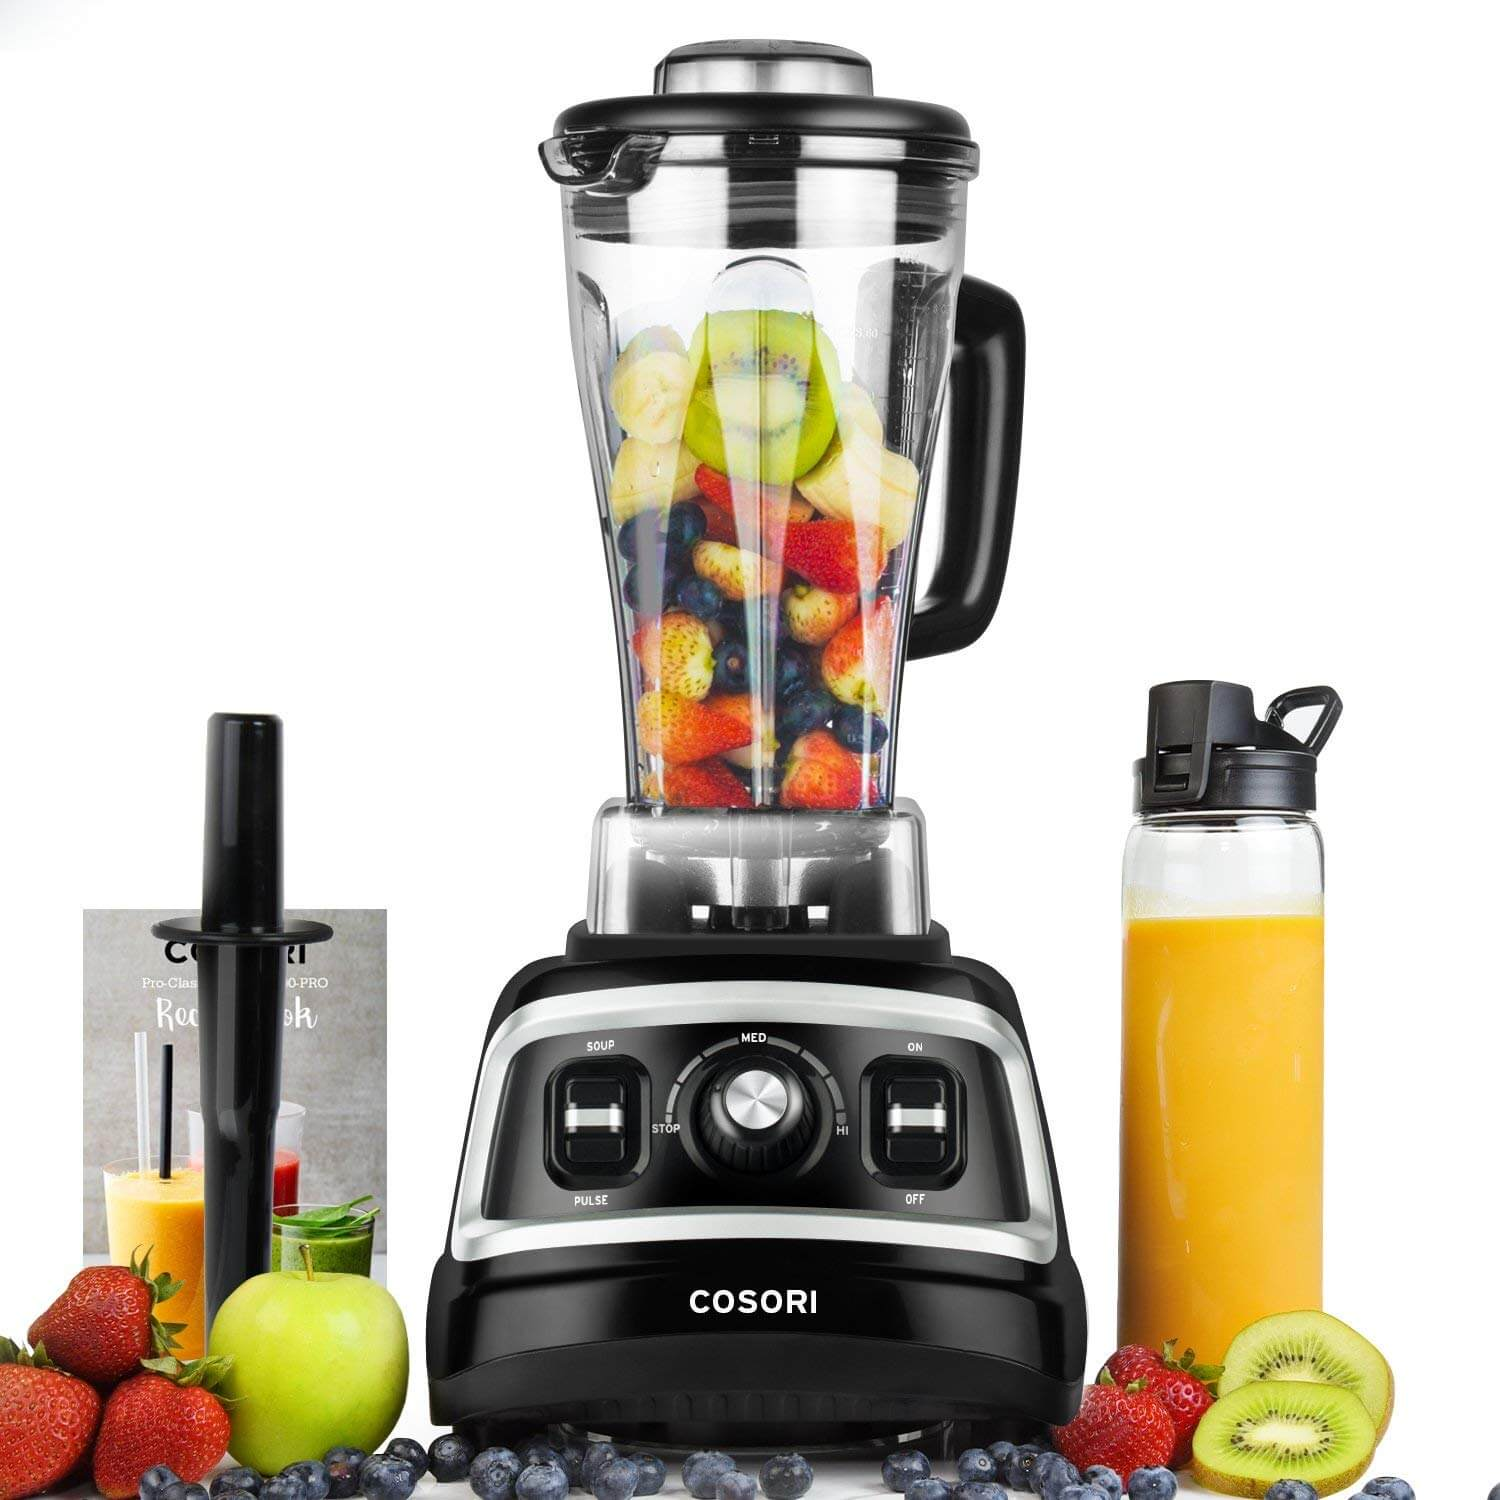 COSORI Blender 1500W Professional Heavy Duty Smoothie Maker